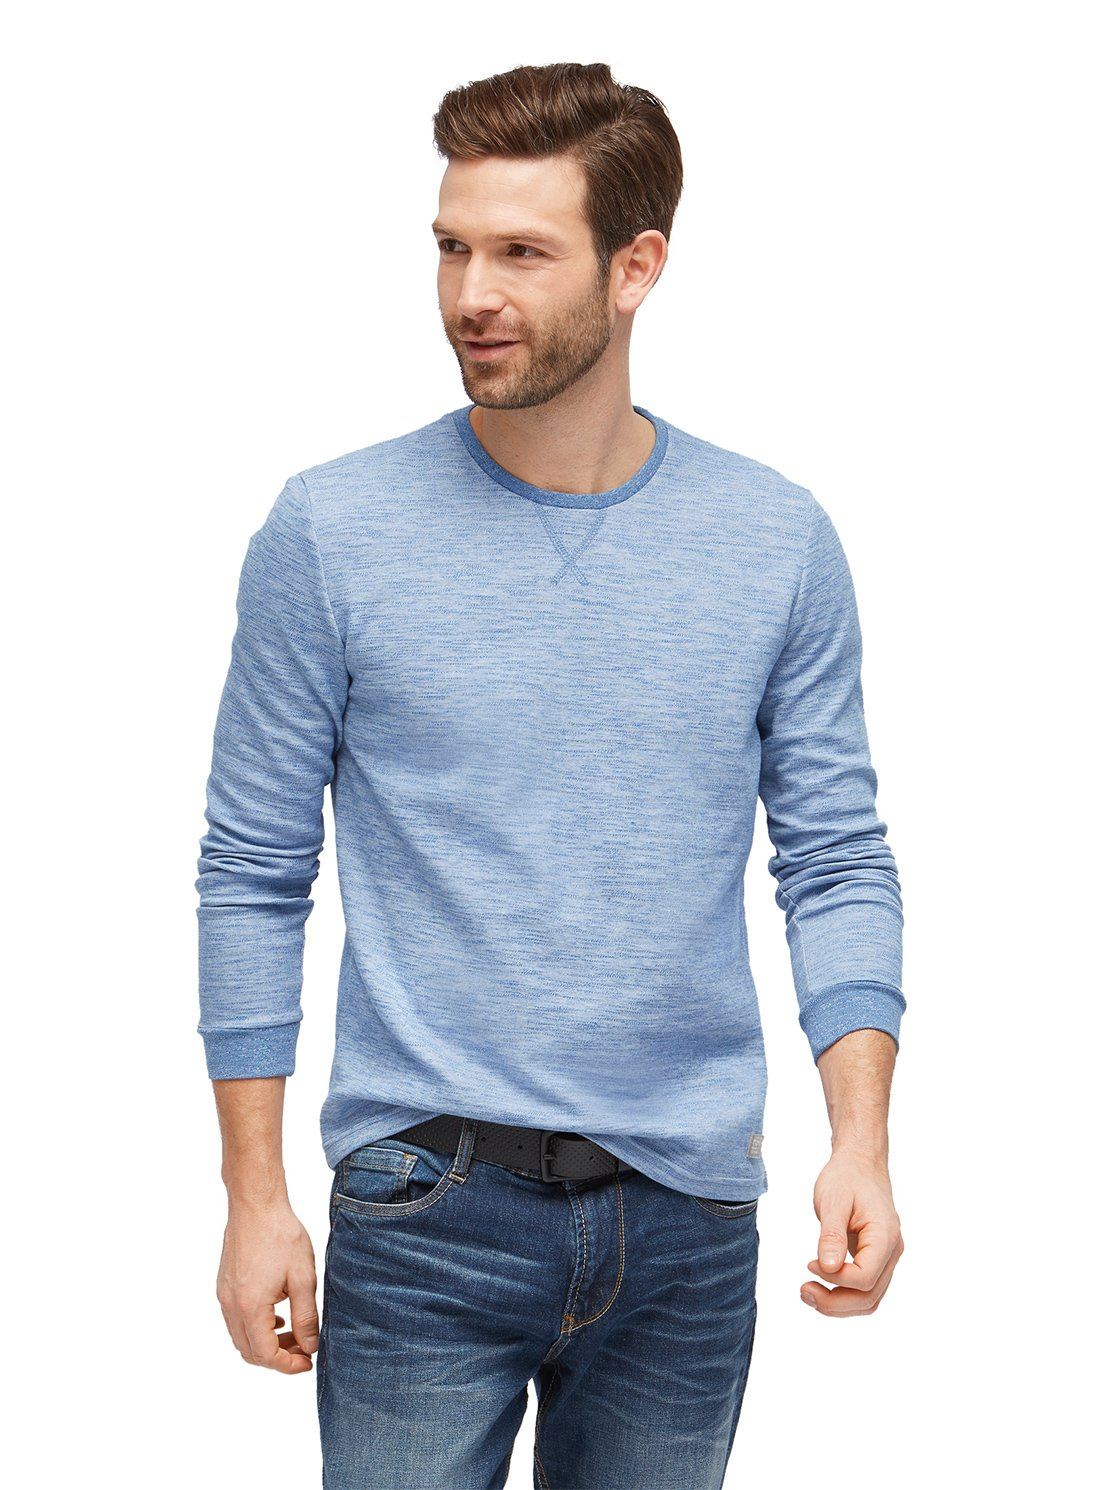 TOM TAILOR Herren Langarmshirt Longsleeve with Stripes: Amazon.de:  Bekleidung